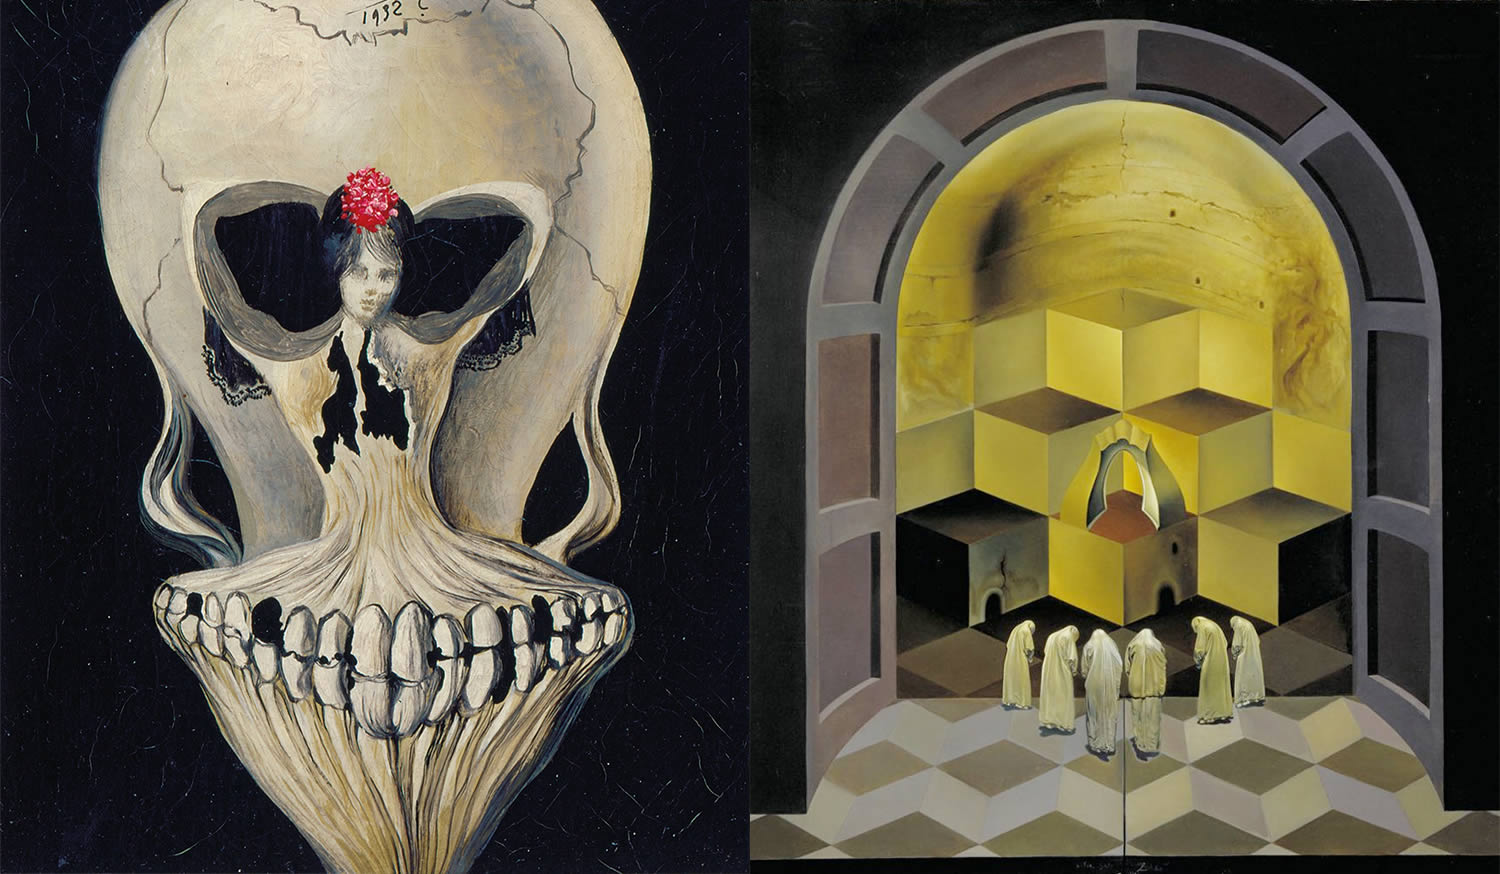 ballerina skull and Skull of Zurbaran, paintings by dali